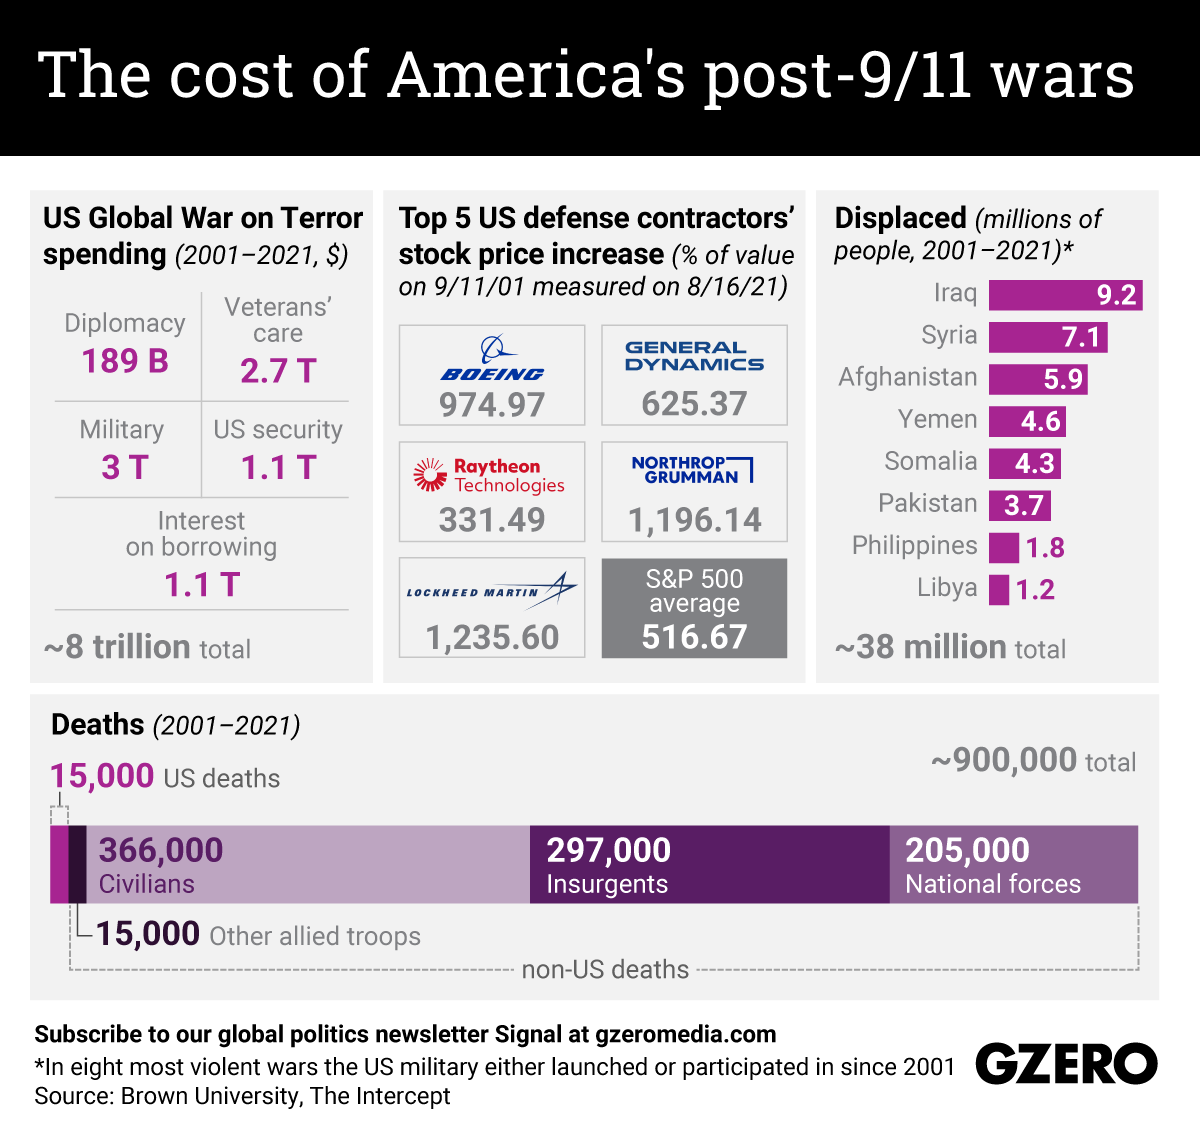 The Graphic Truth: The cost of America's post-9/11 wars